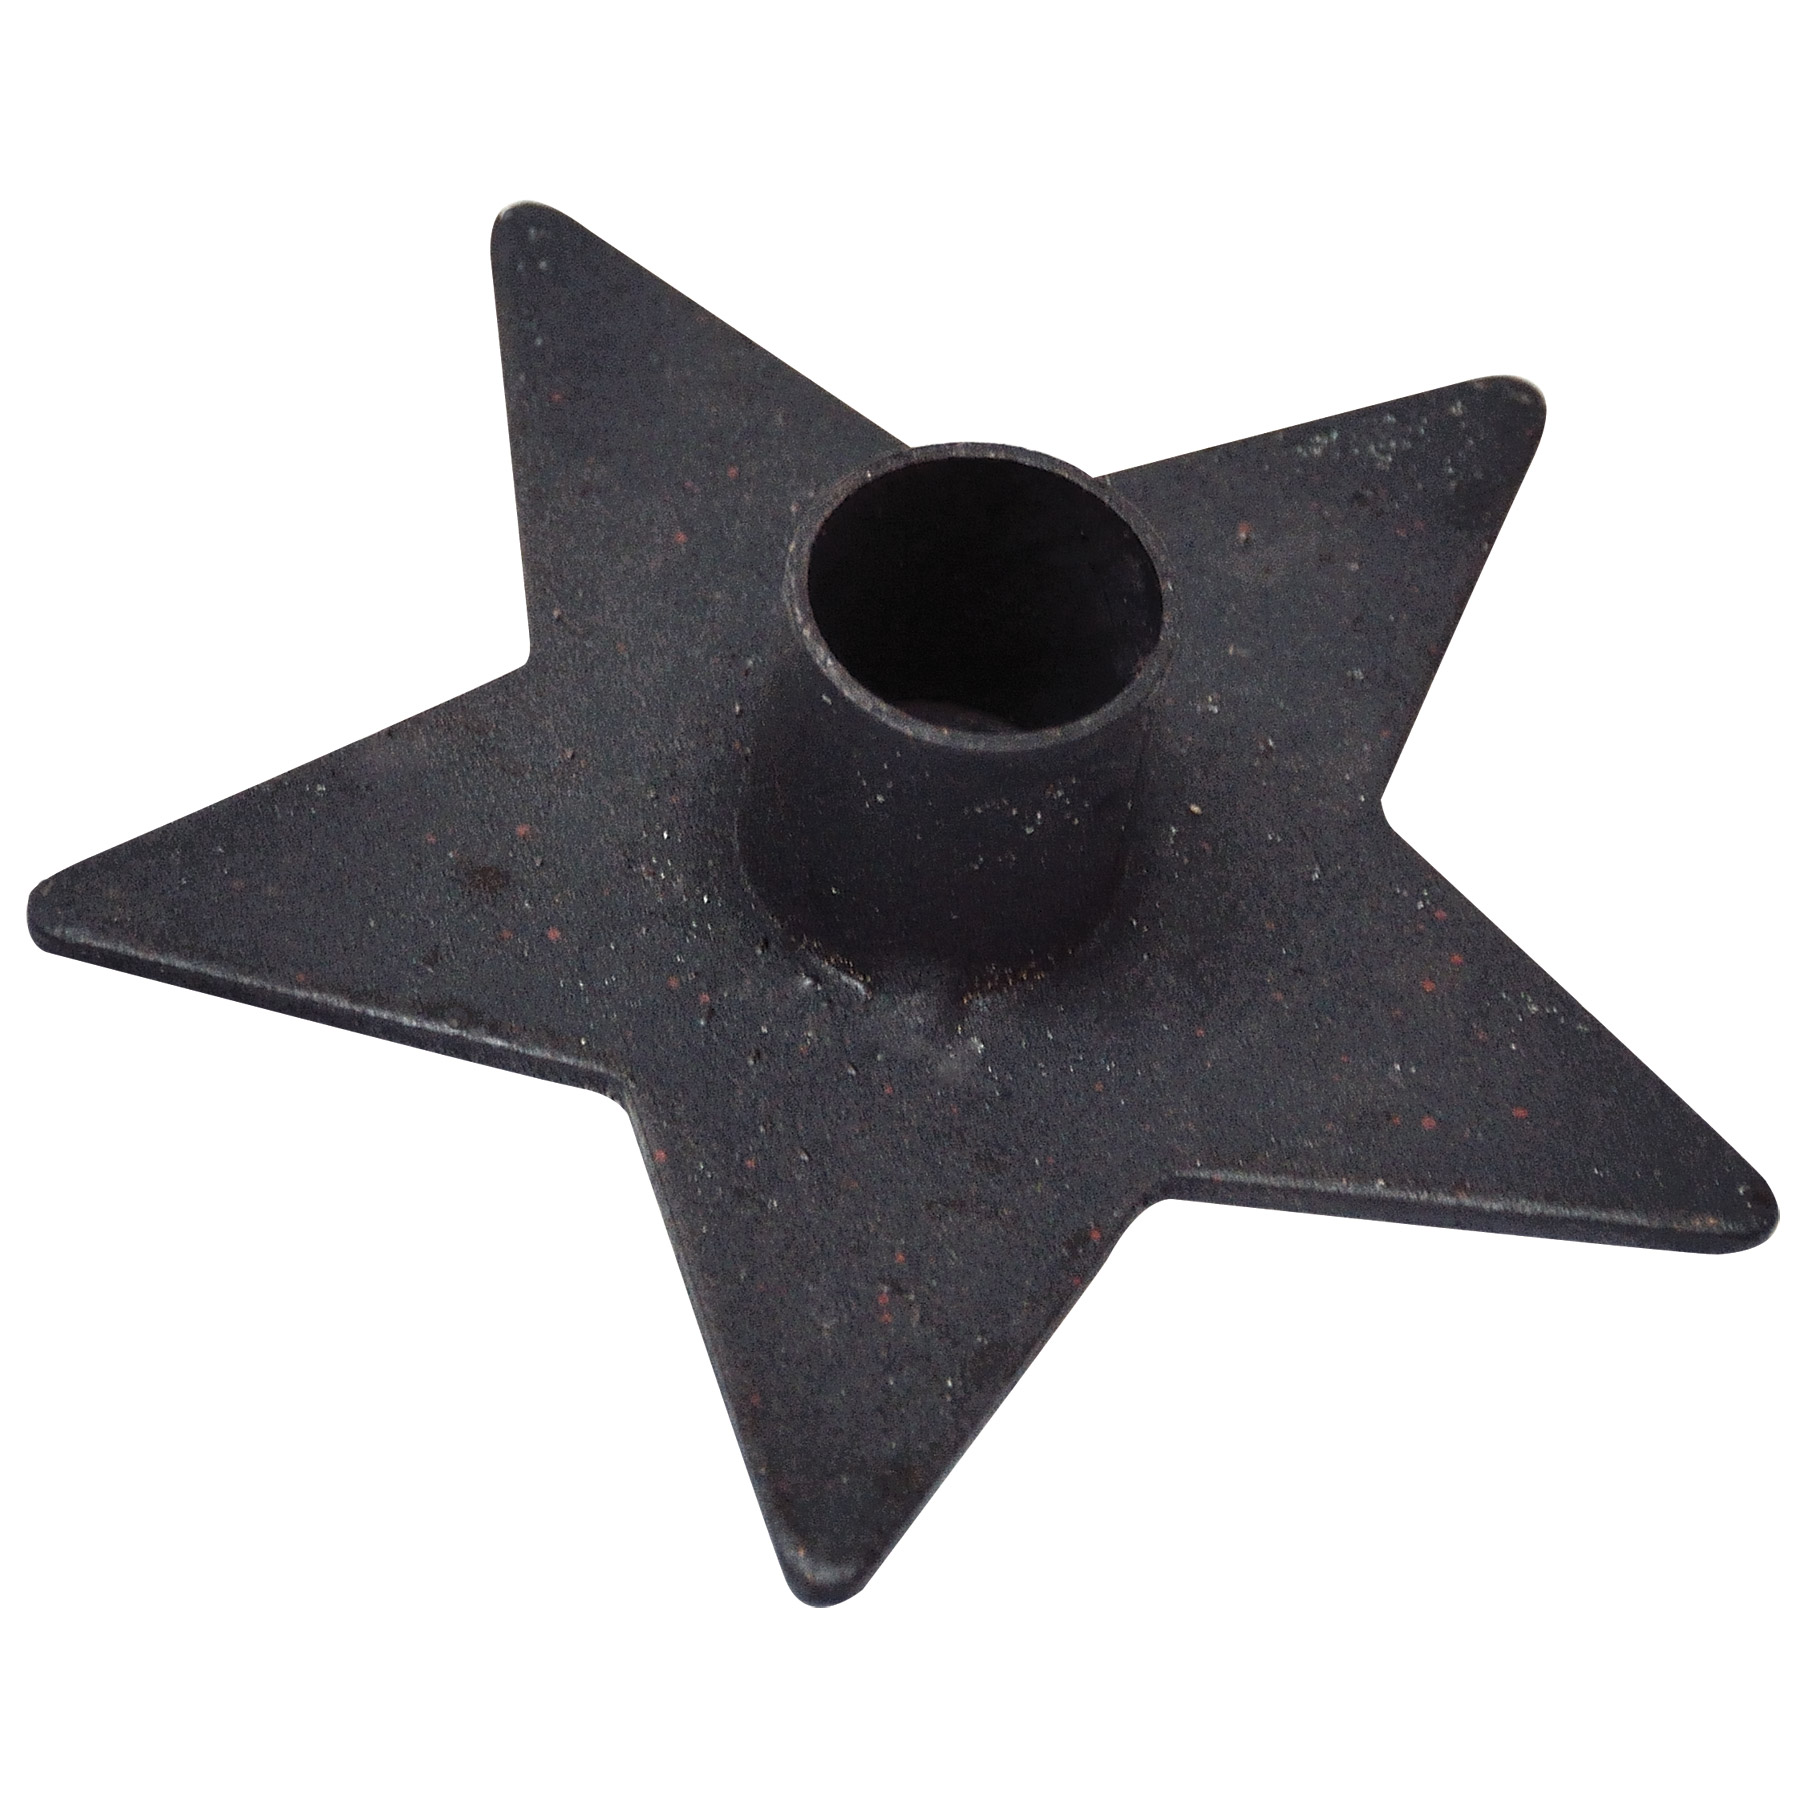 hrs-46205-distressed-star-candle-holder-lrg